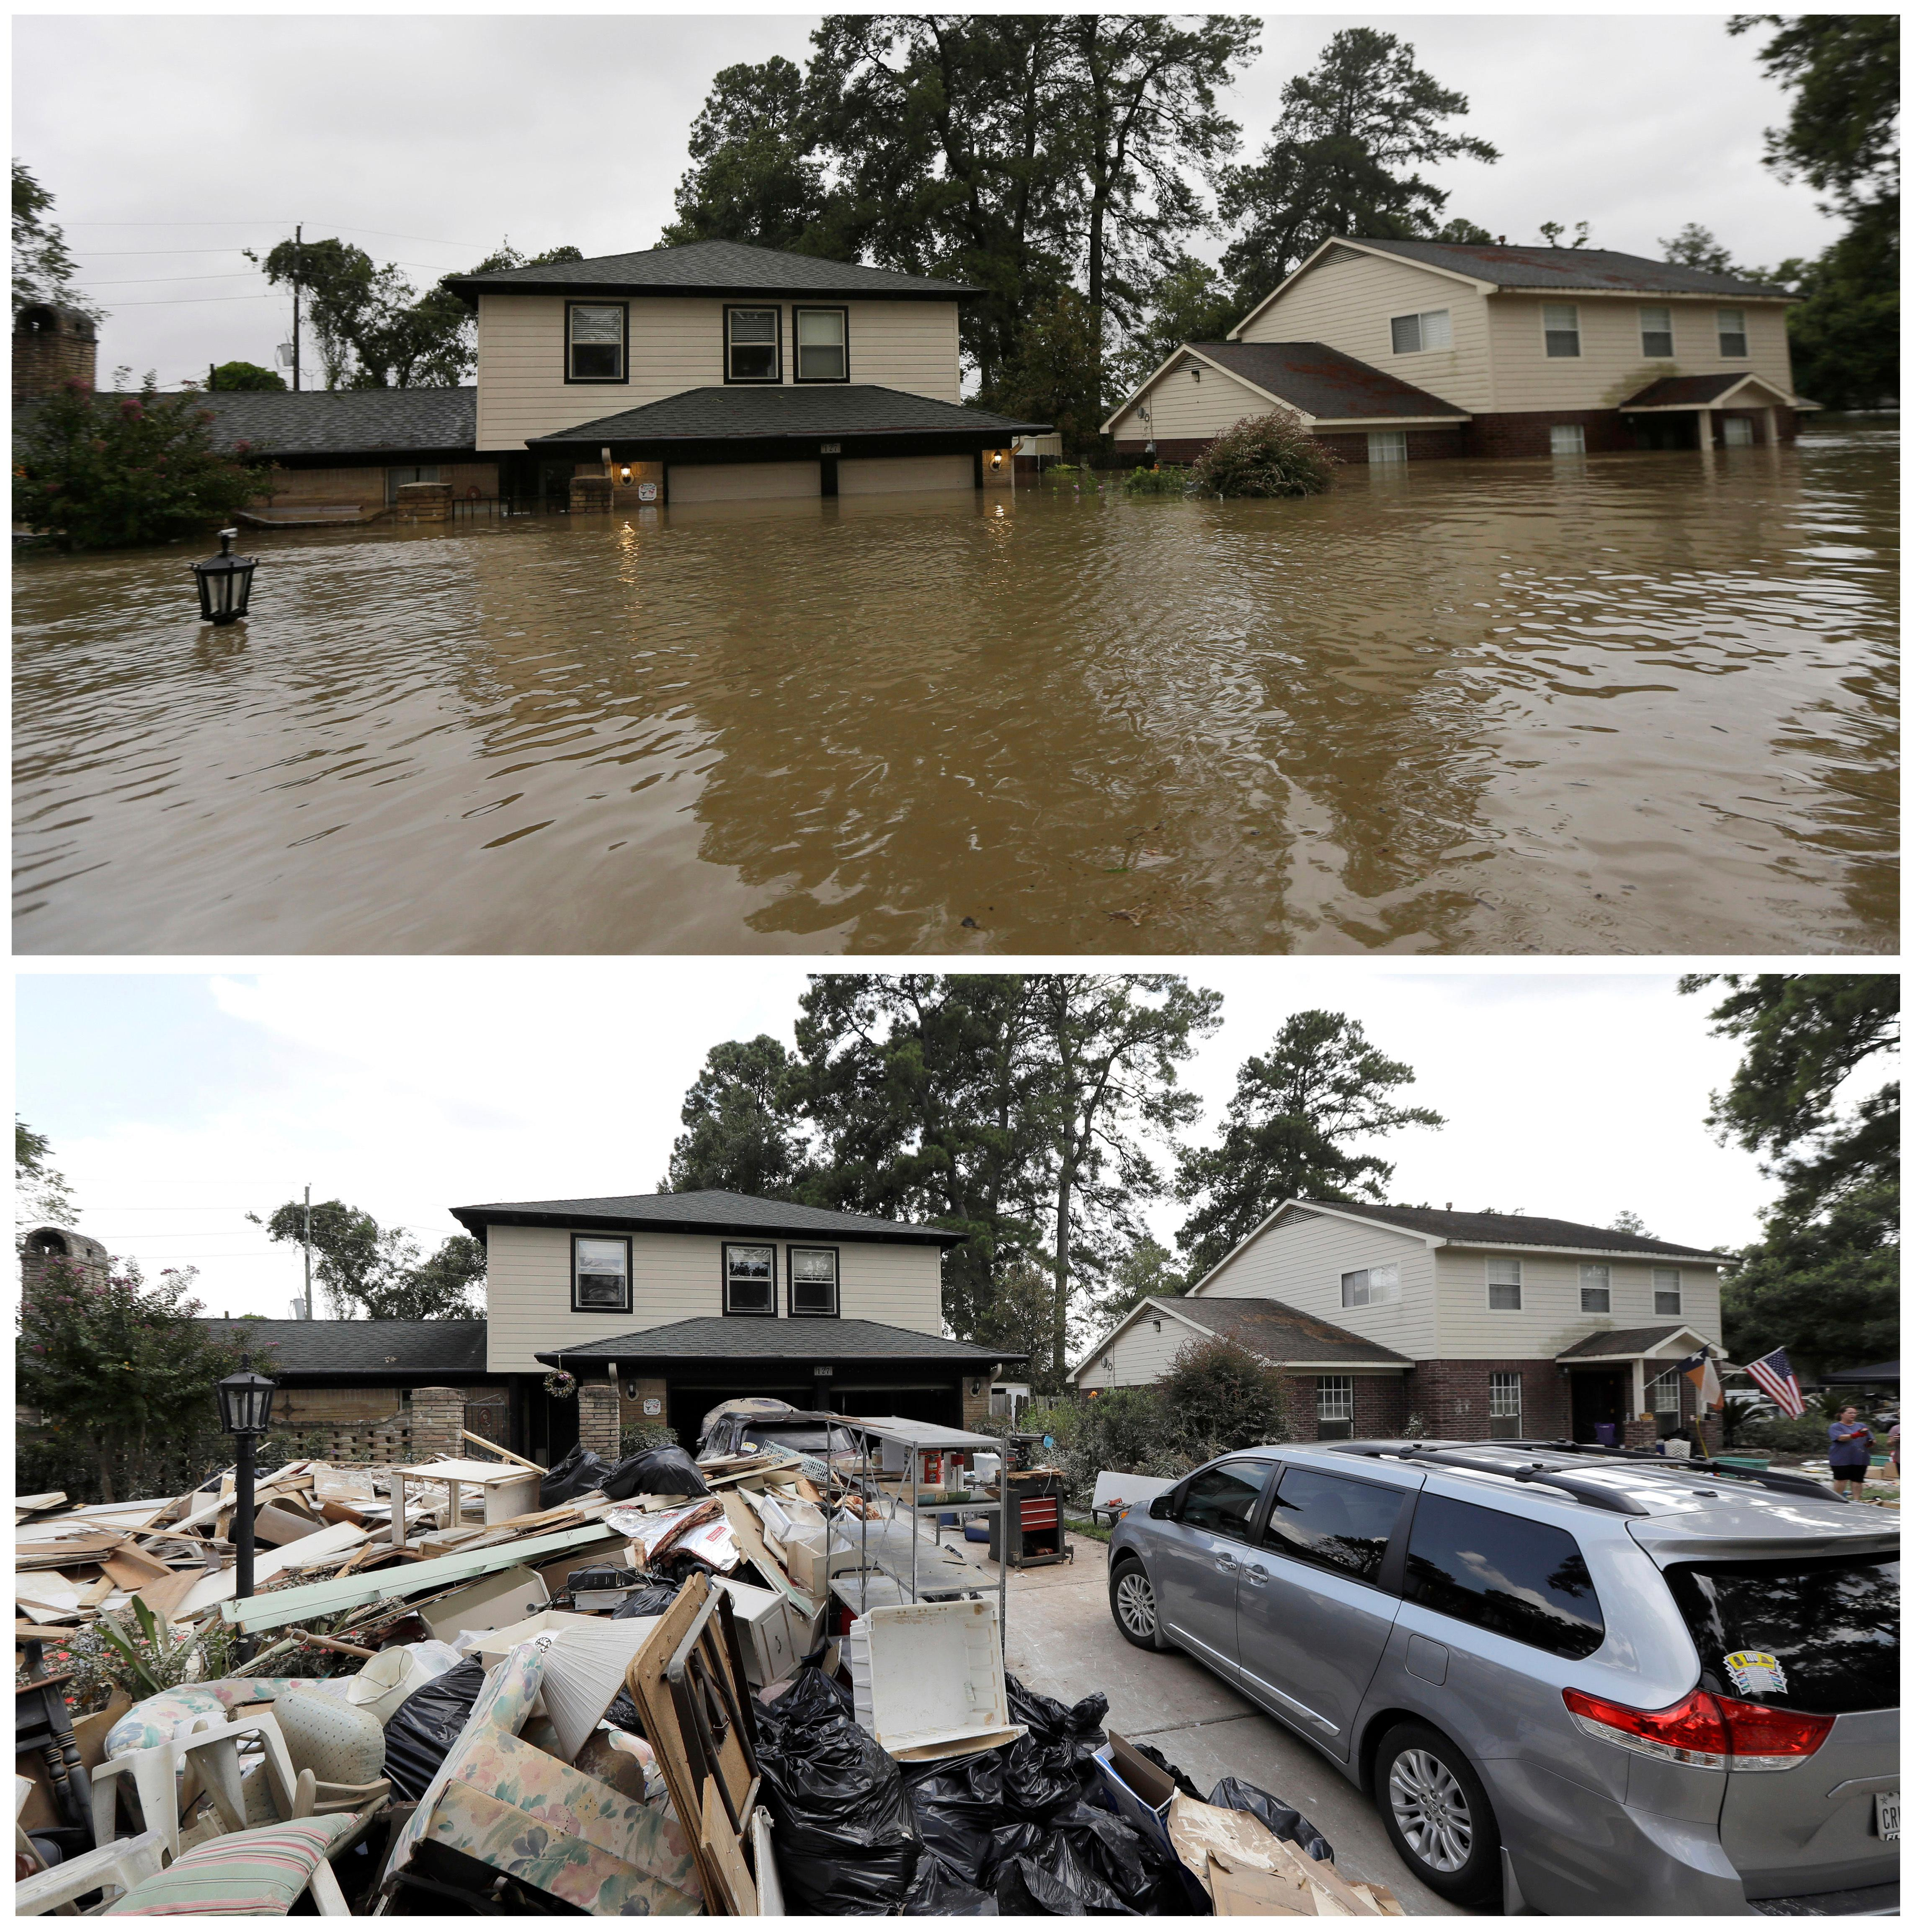 FILE - In this photo combination, floodwaters from Tropical Storm Harvey, top, surround homes in Spring, Texas, on Aug. 28, 2017, and damaged goods surround the same homes on Sept. 5, bottom, after the water receded. (AP Photo/David J. Phillip, File)